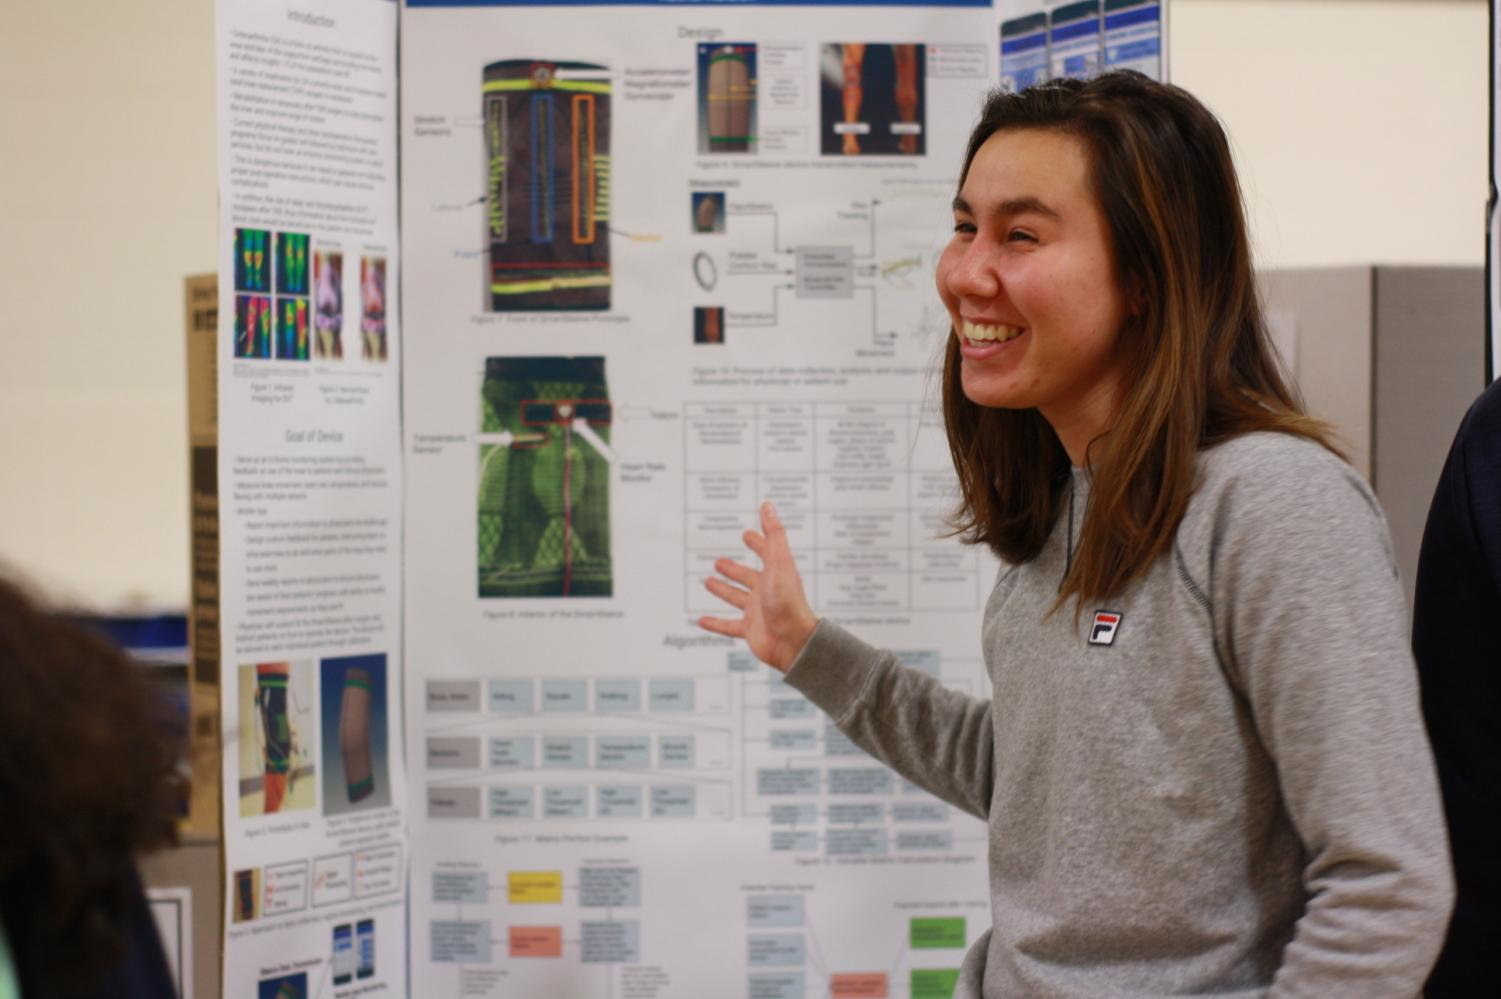 After+learning+that+her+project+was+a+Regeneron+semifinalist%2C+senior+Rachel+Naidich+passionately+discusses+her+project+with+visitors+of+the+Science+Fair.